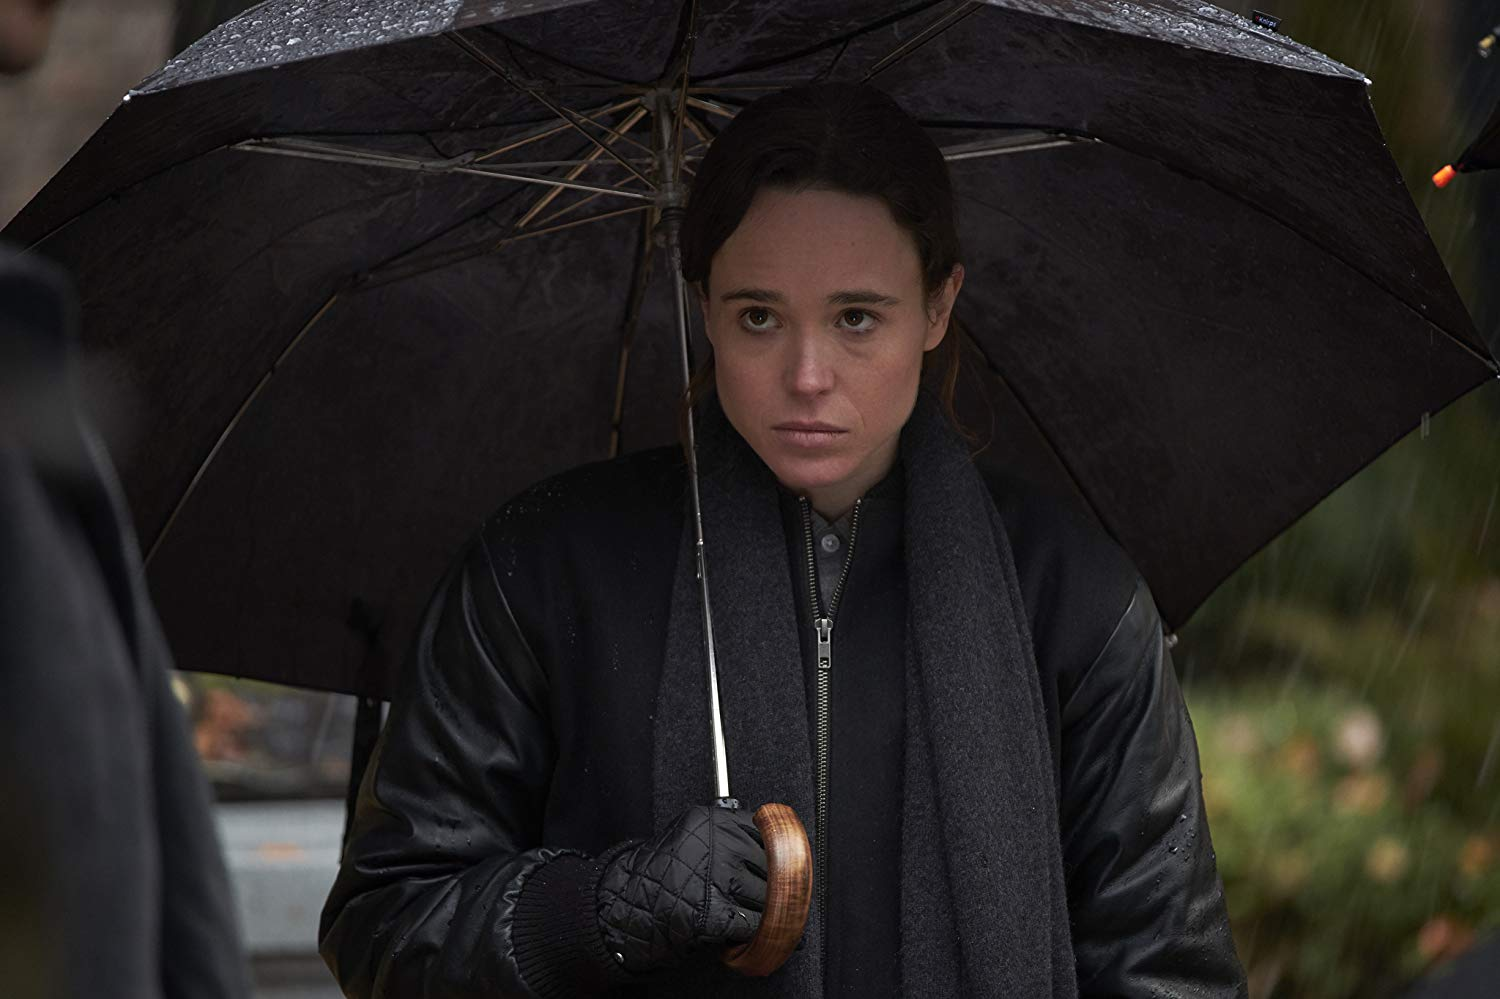 For the first time in 17 years, Vanya reunites with her siblings during their father's funeral. Photo Credit: IMDb.com